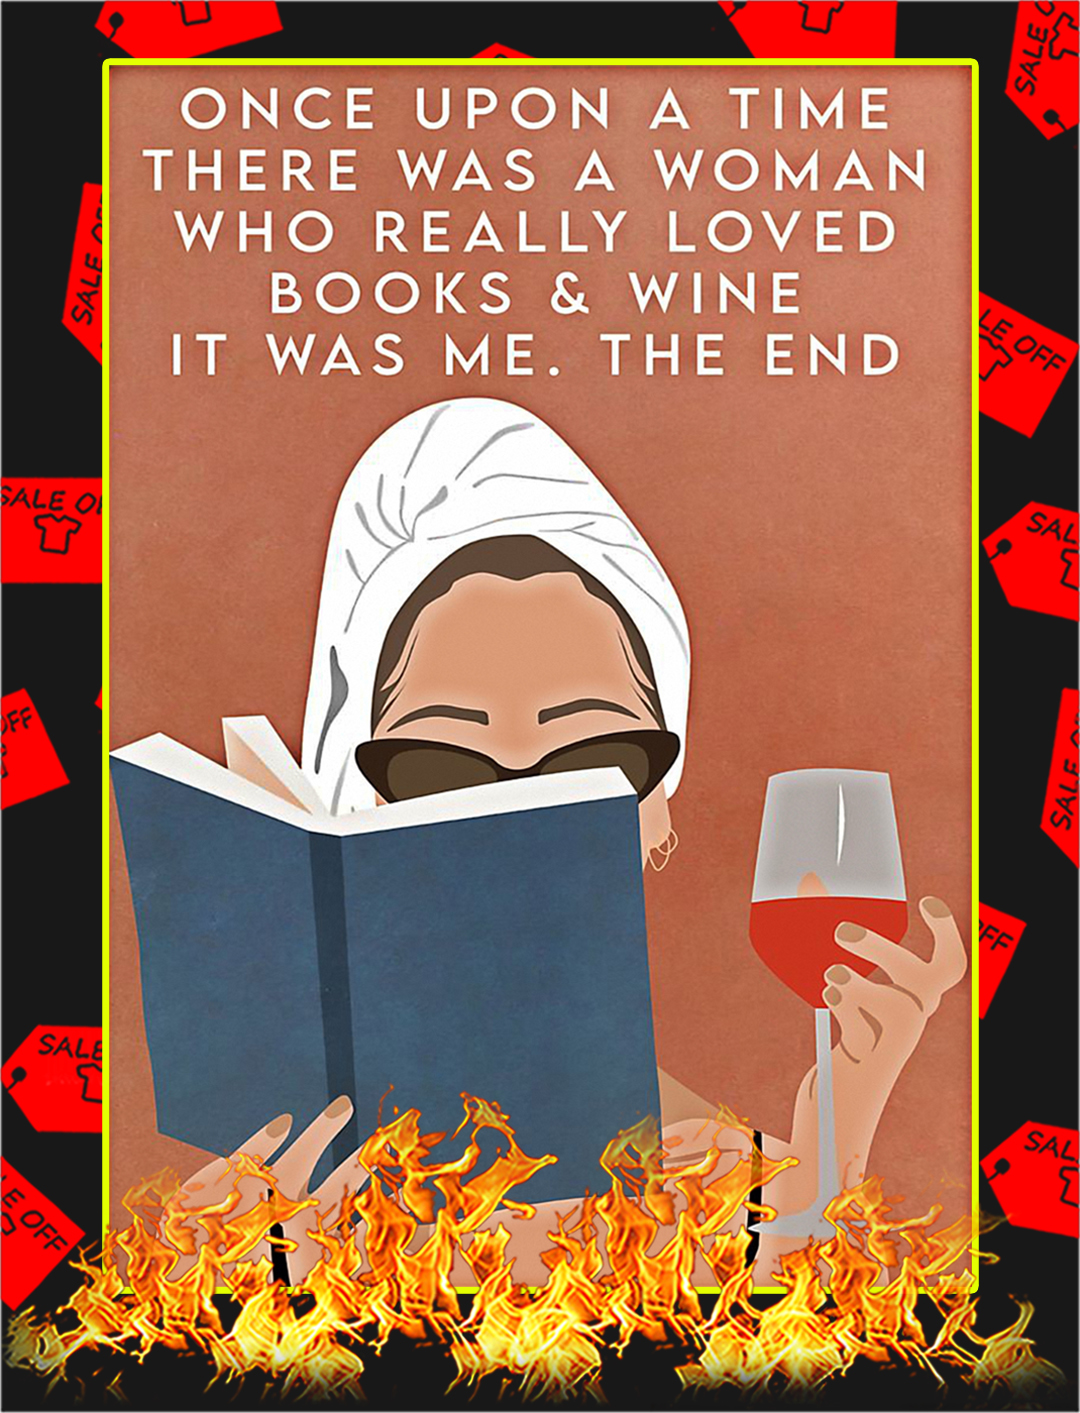 Once upon a time there was a woman loved books and wine poster - A3